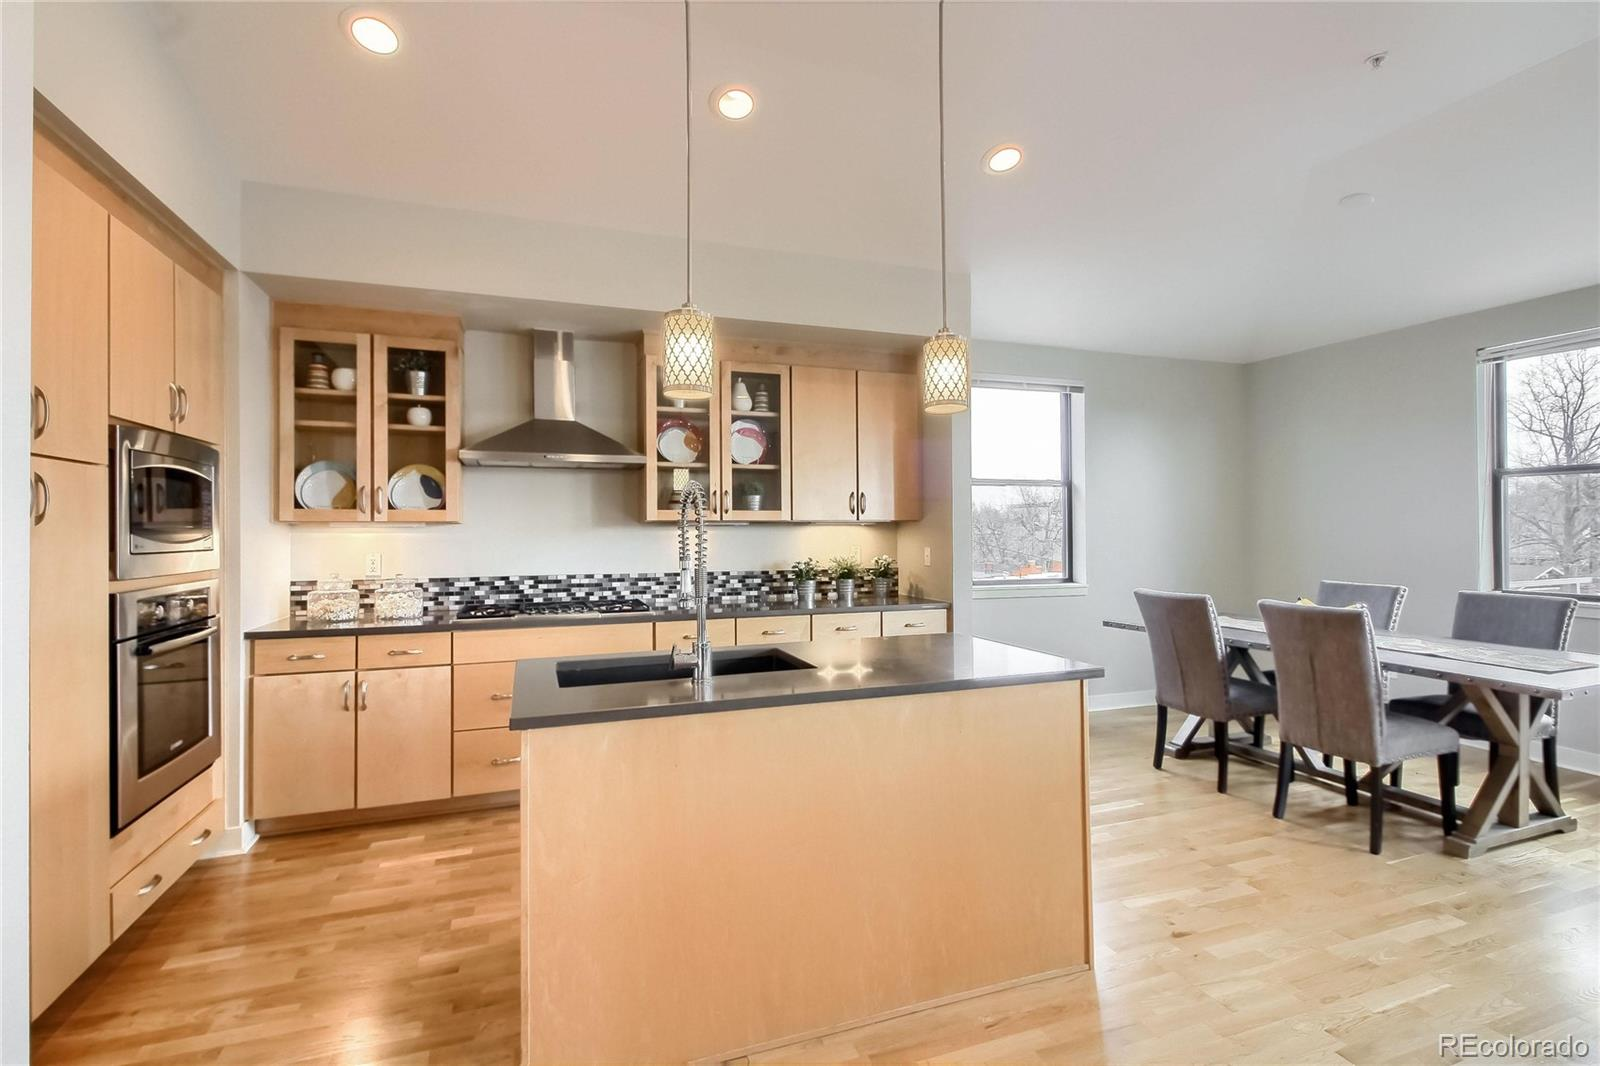 MLS# 4513203 - 13 - 360 S Lafayette Street #404, Denver, CO 80209